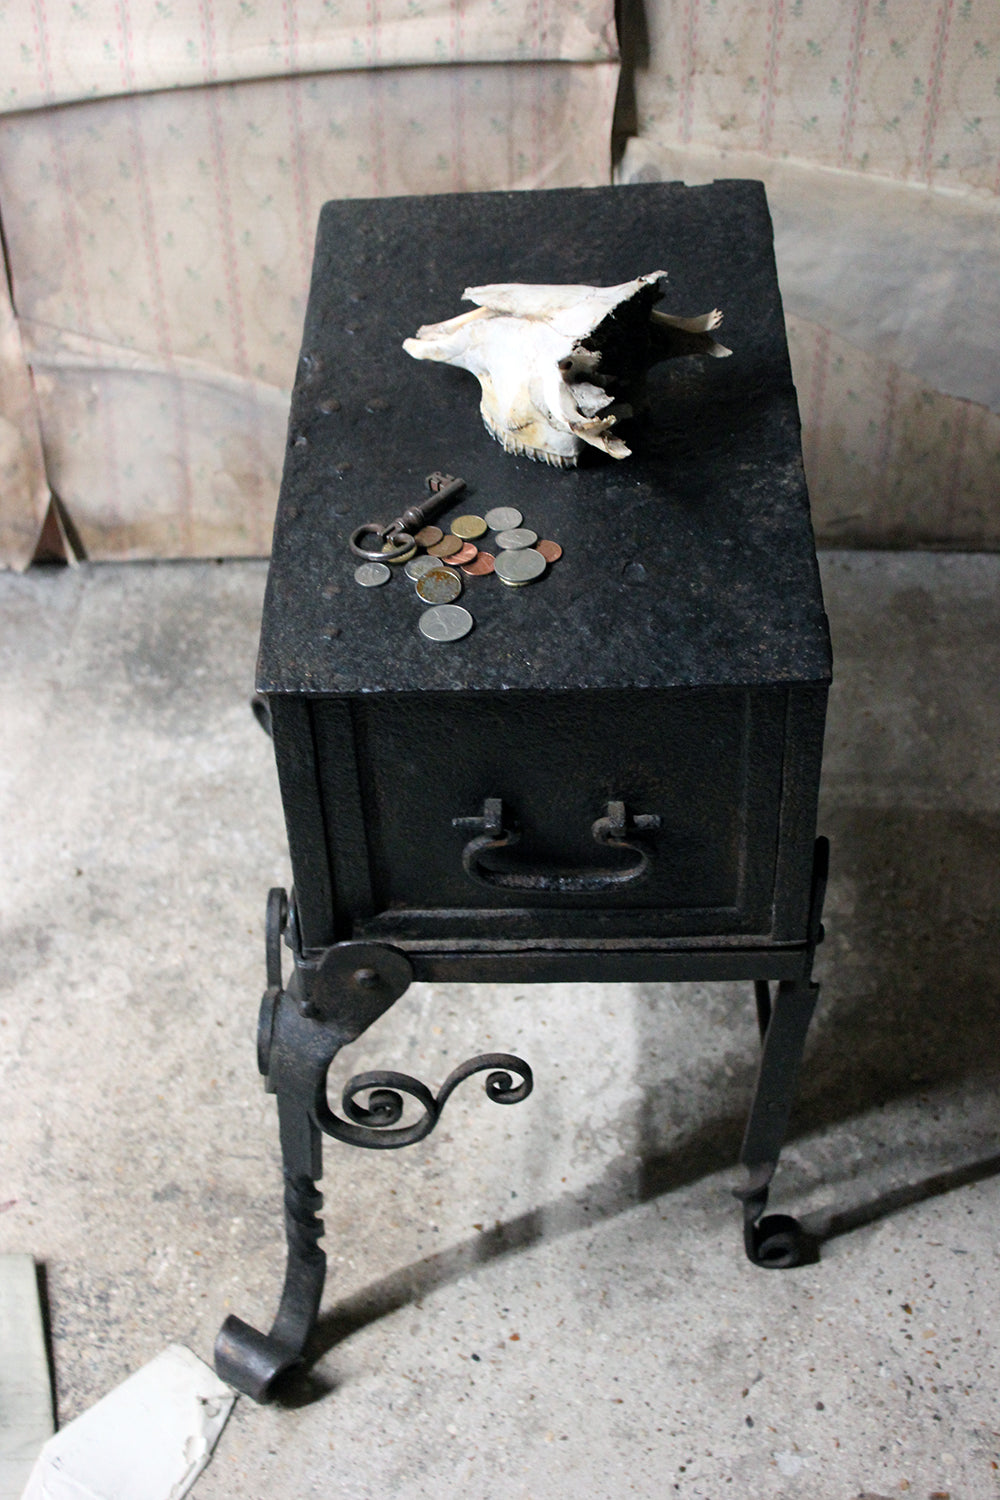 A Rare 17thC Spanish Baroque Iron Strong Box on Stand c.1660-90